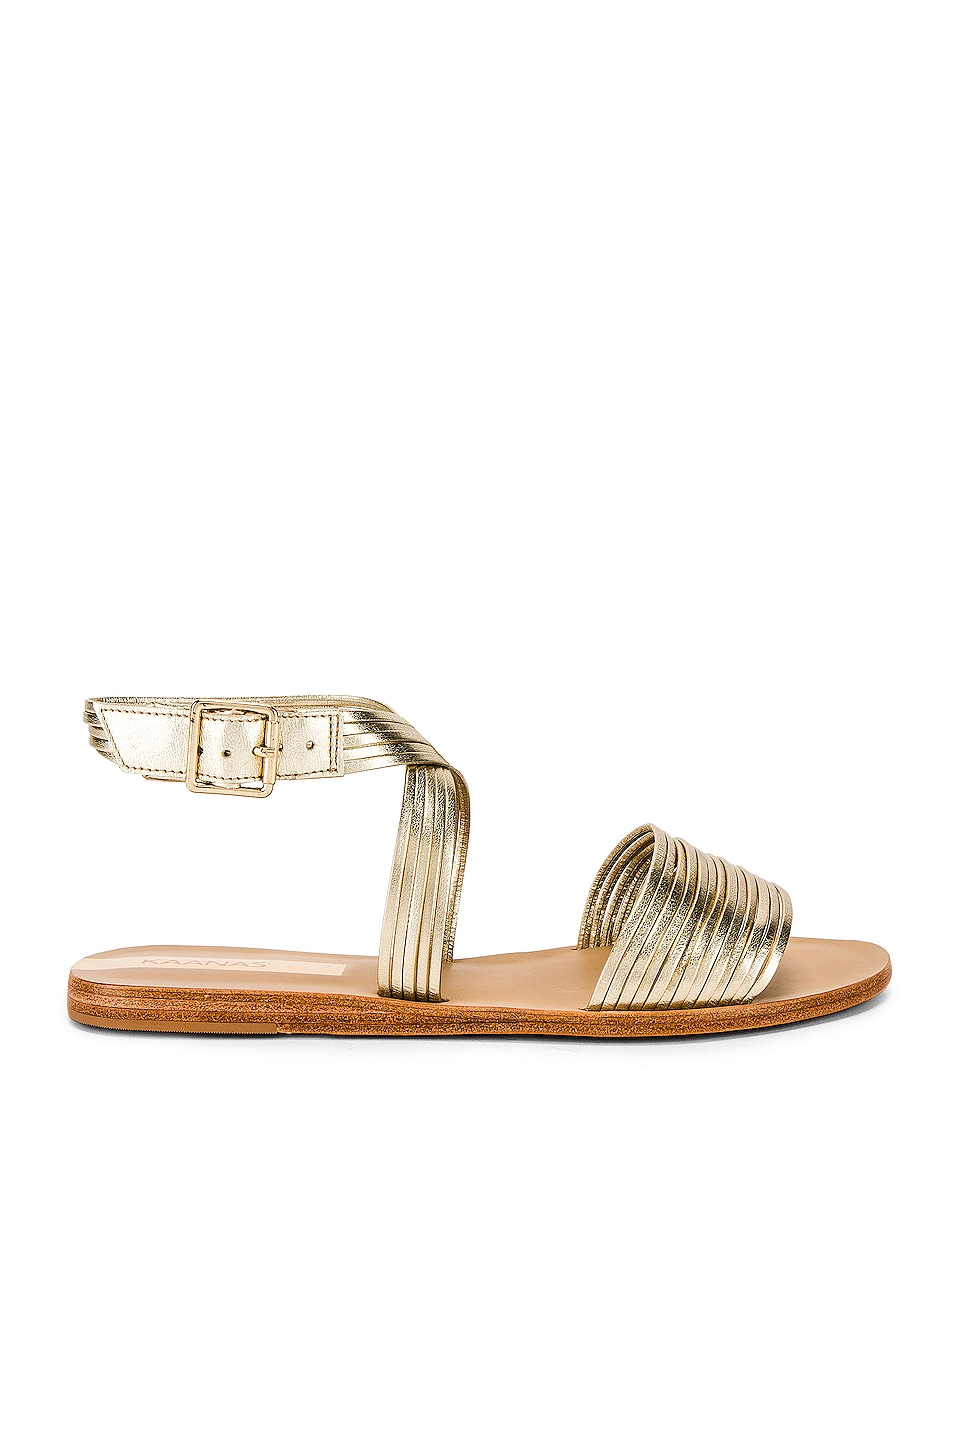 Kaanas Copacabana Strappy Ankle Wrap Sandal in Gold